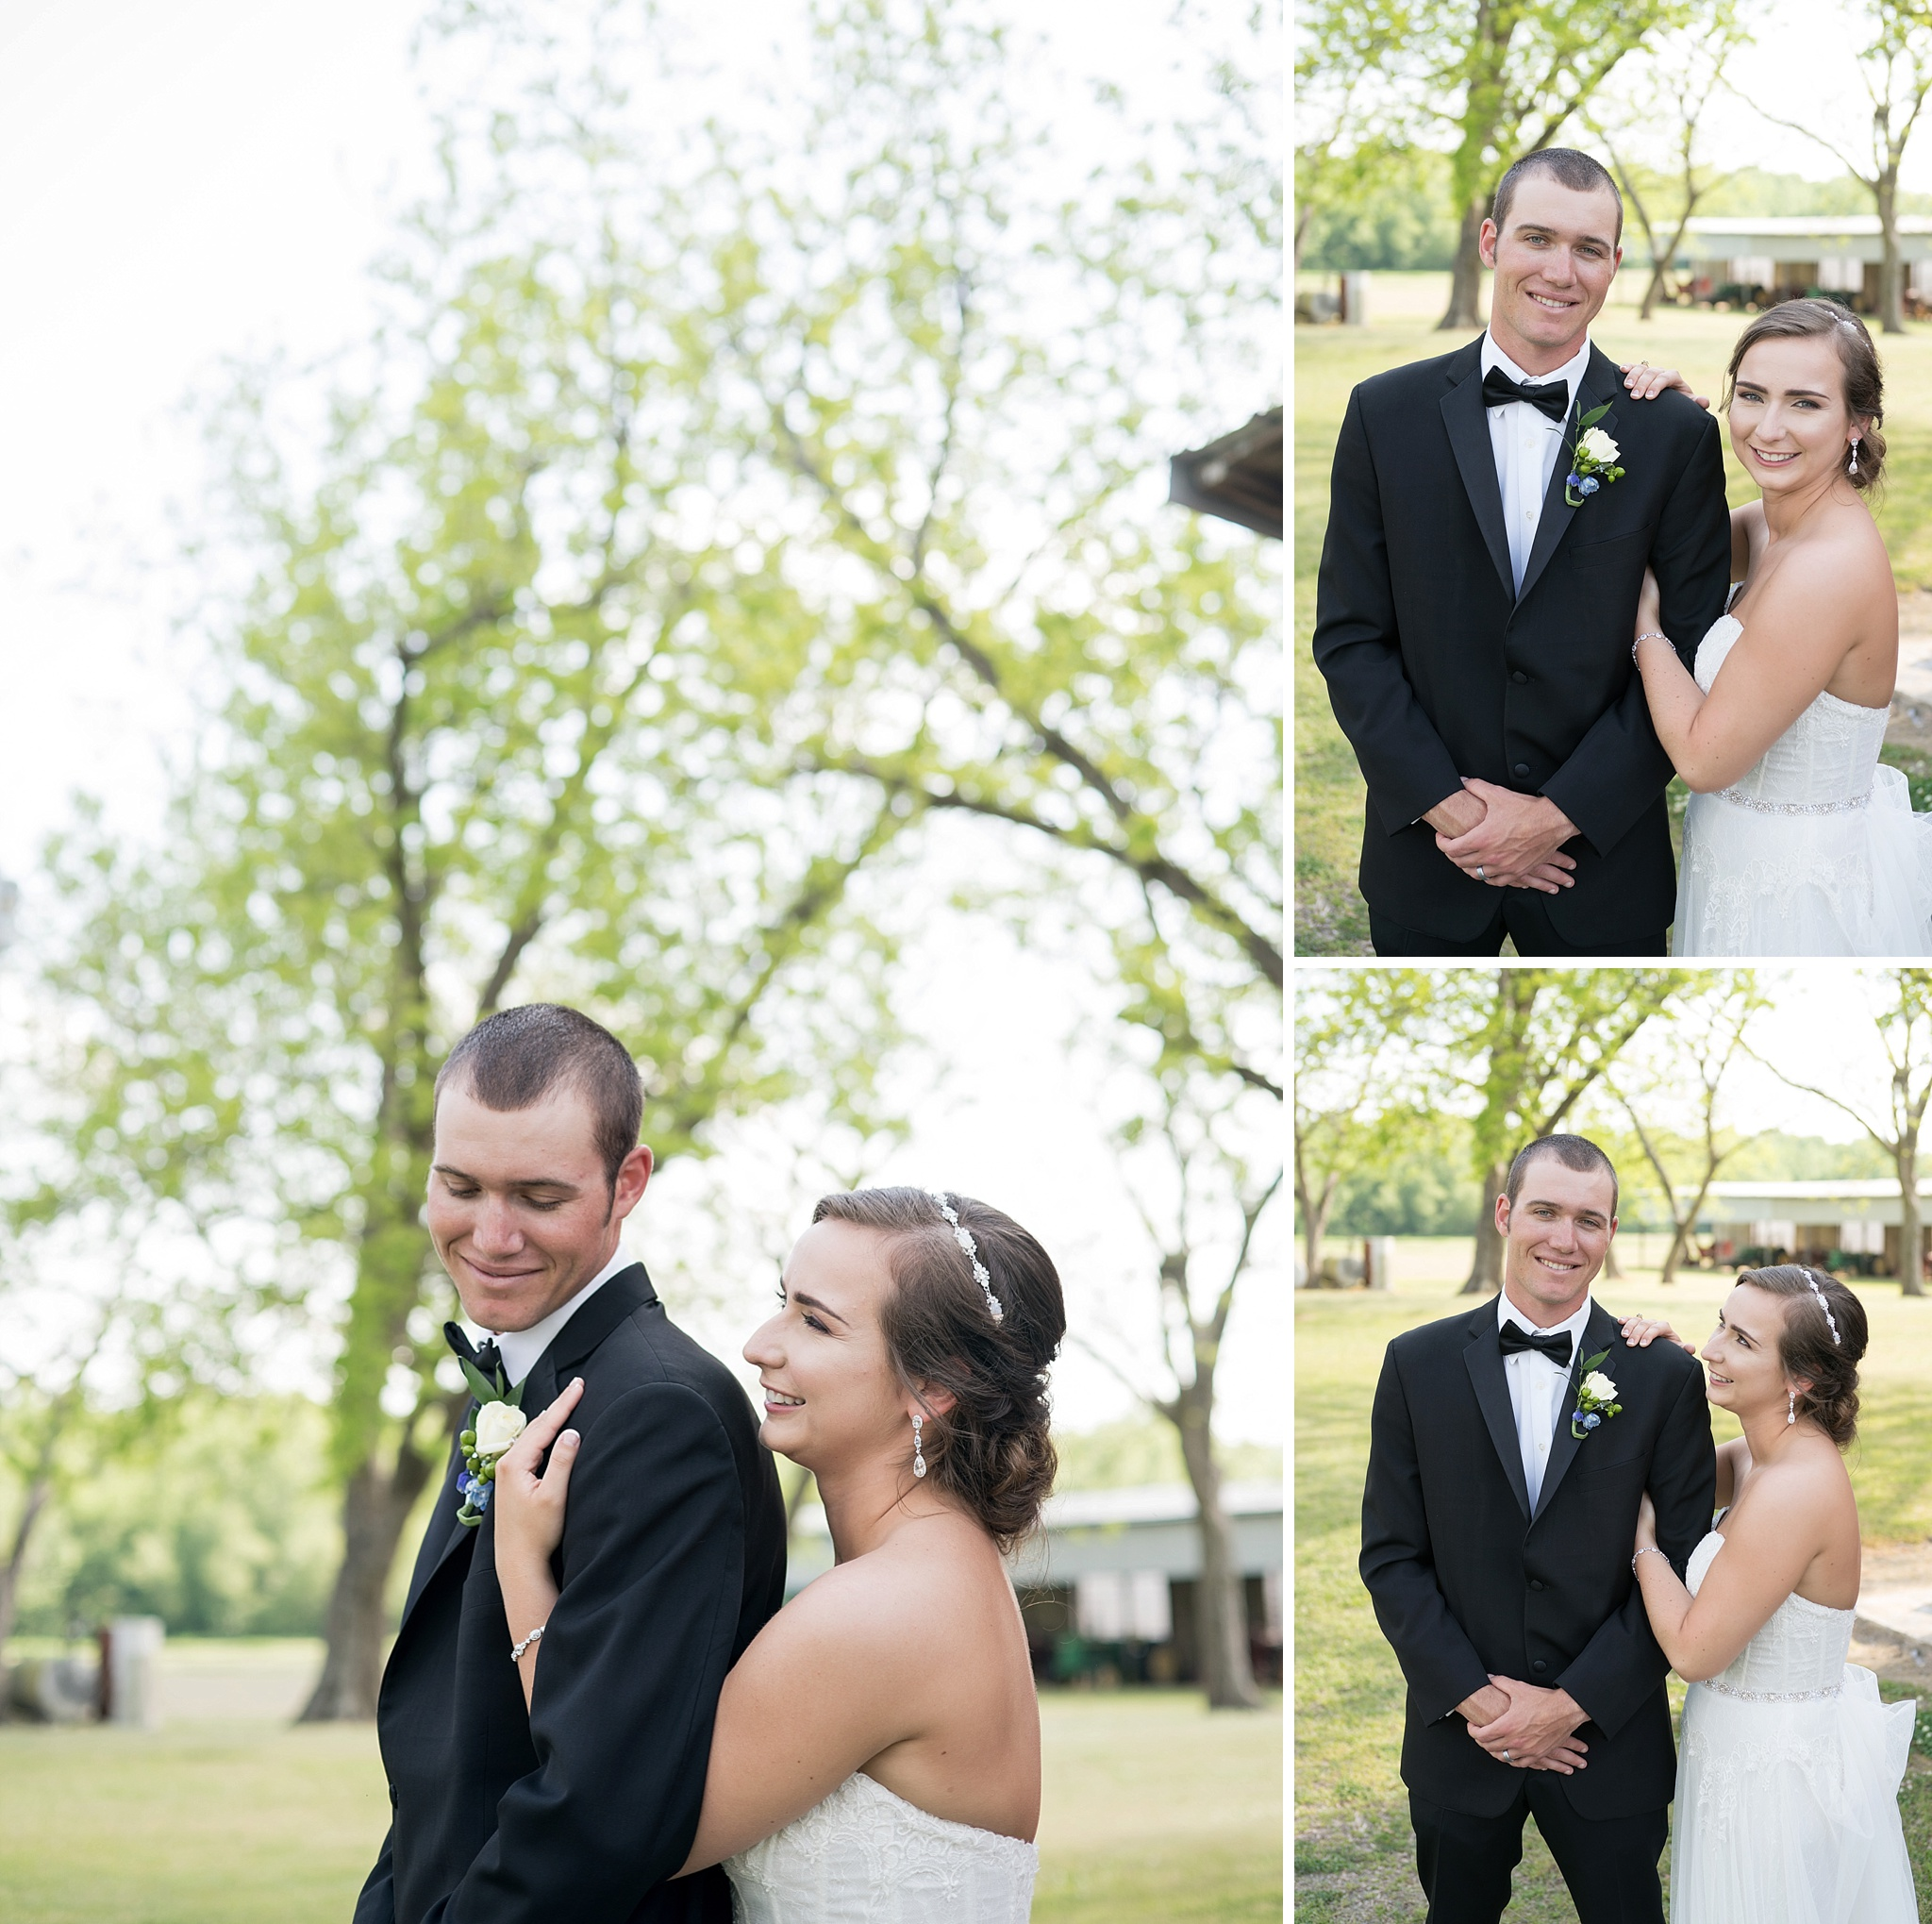 400-Saint-Andrews-Wedding-NC-Photographer-154.jpg